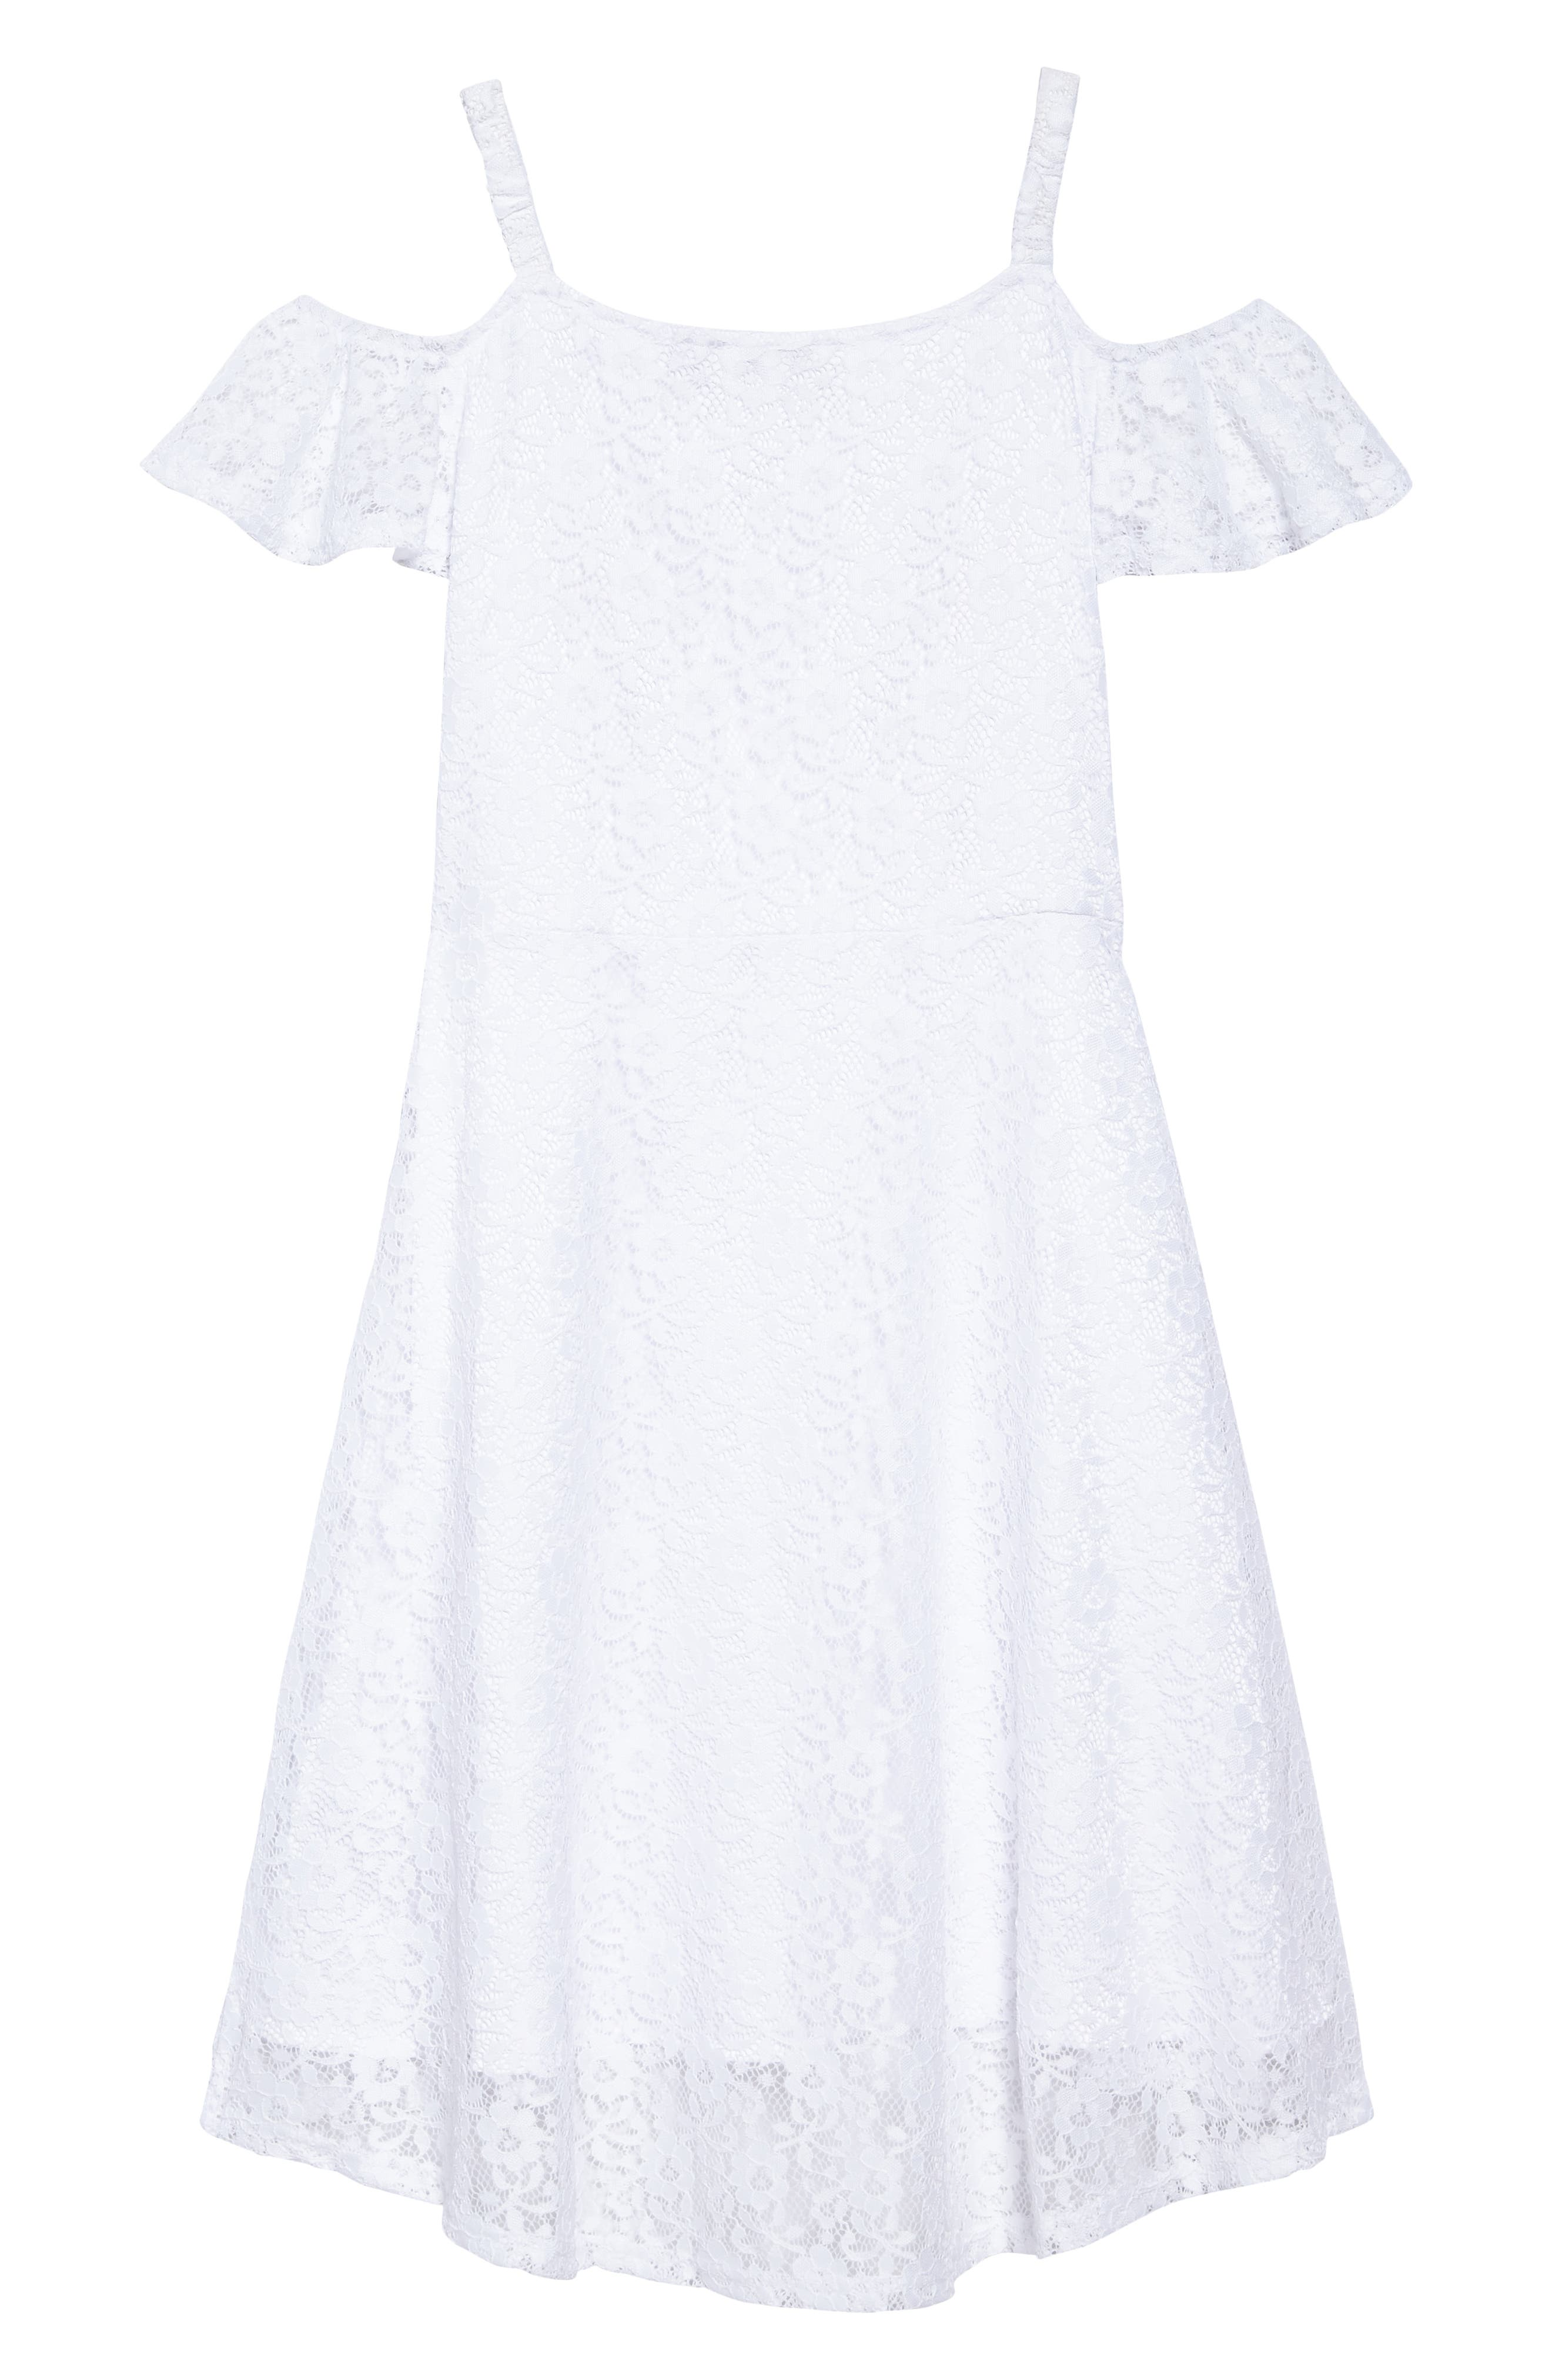 MARCIANO,                             Embroidered Lace Cold Shoulder Dress,                             Alternate thumbnail 2, color,                             118